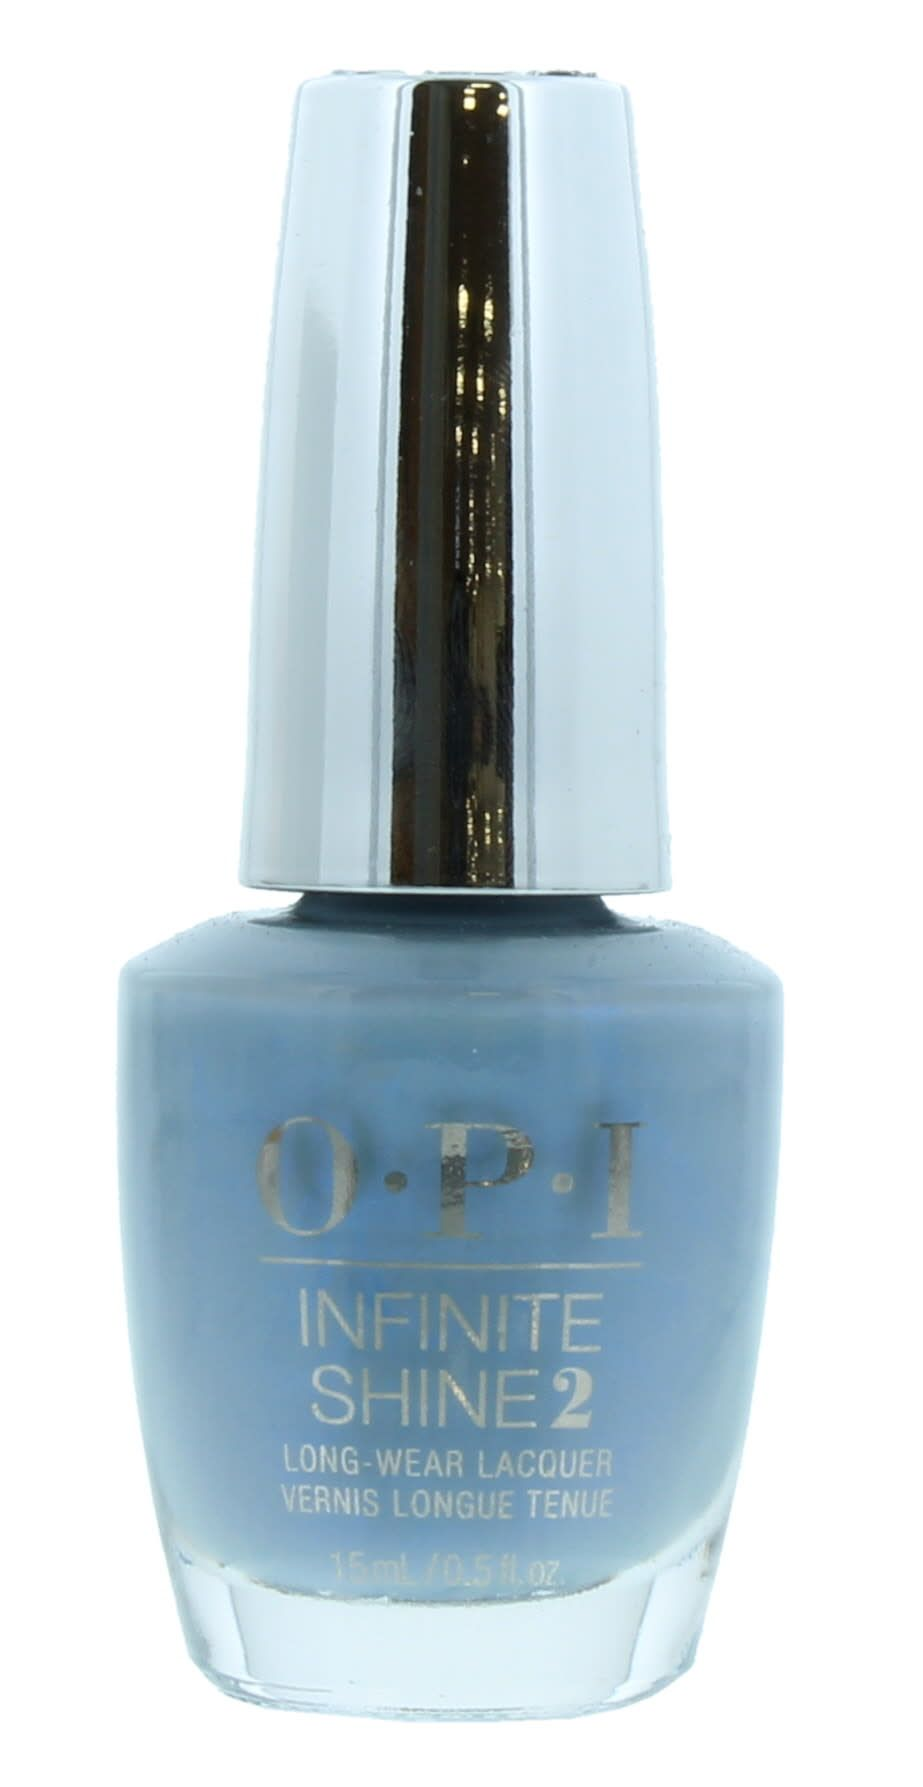 OPI Infinite Shine2 Long-Wear Lacquer 15ml - Old Geysirs